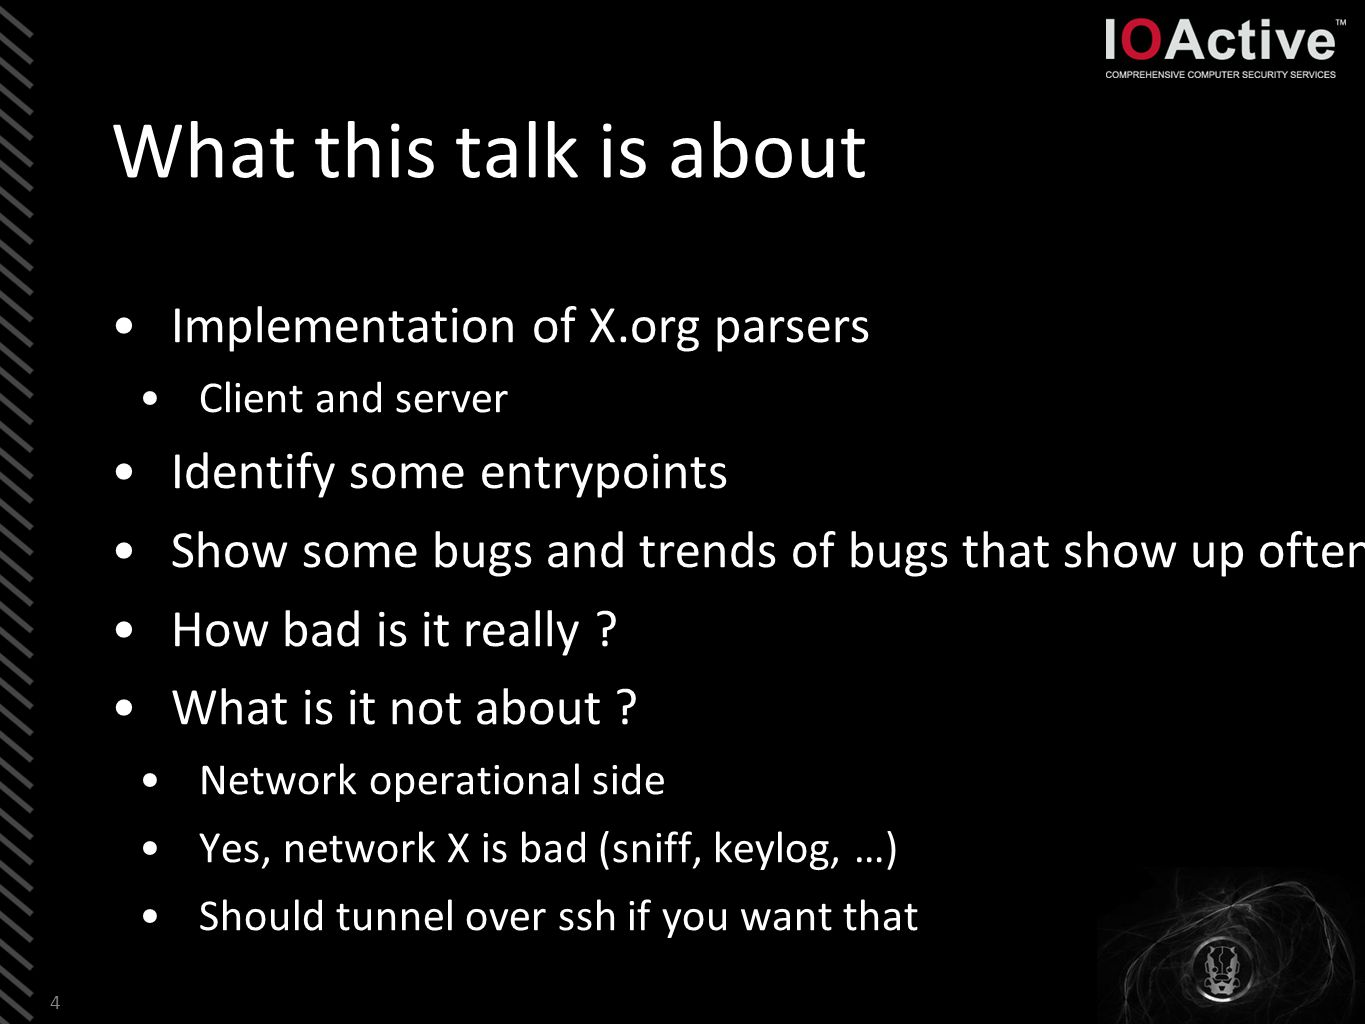 What this talk is about Implementation of X.org parsers Client and server Identify some entrypoints Show some bugs and trends of bugs that show up often How bad is it really .